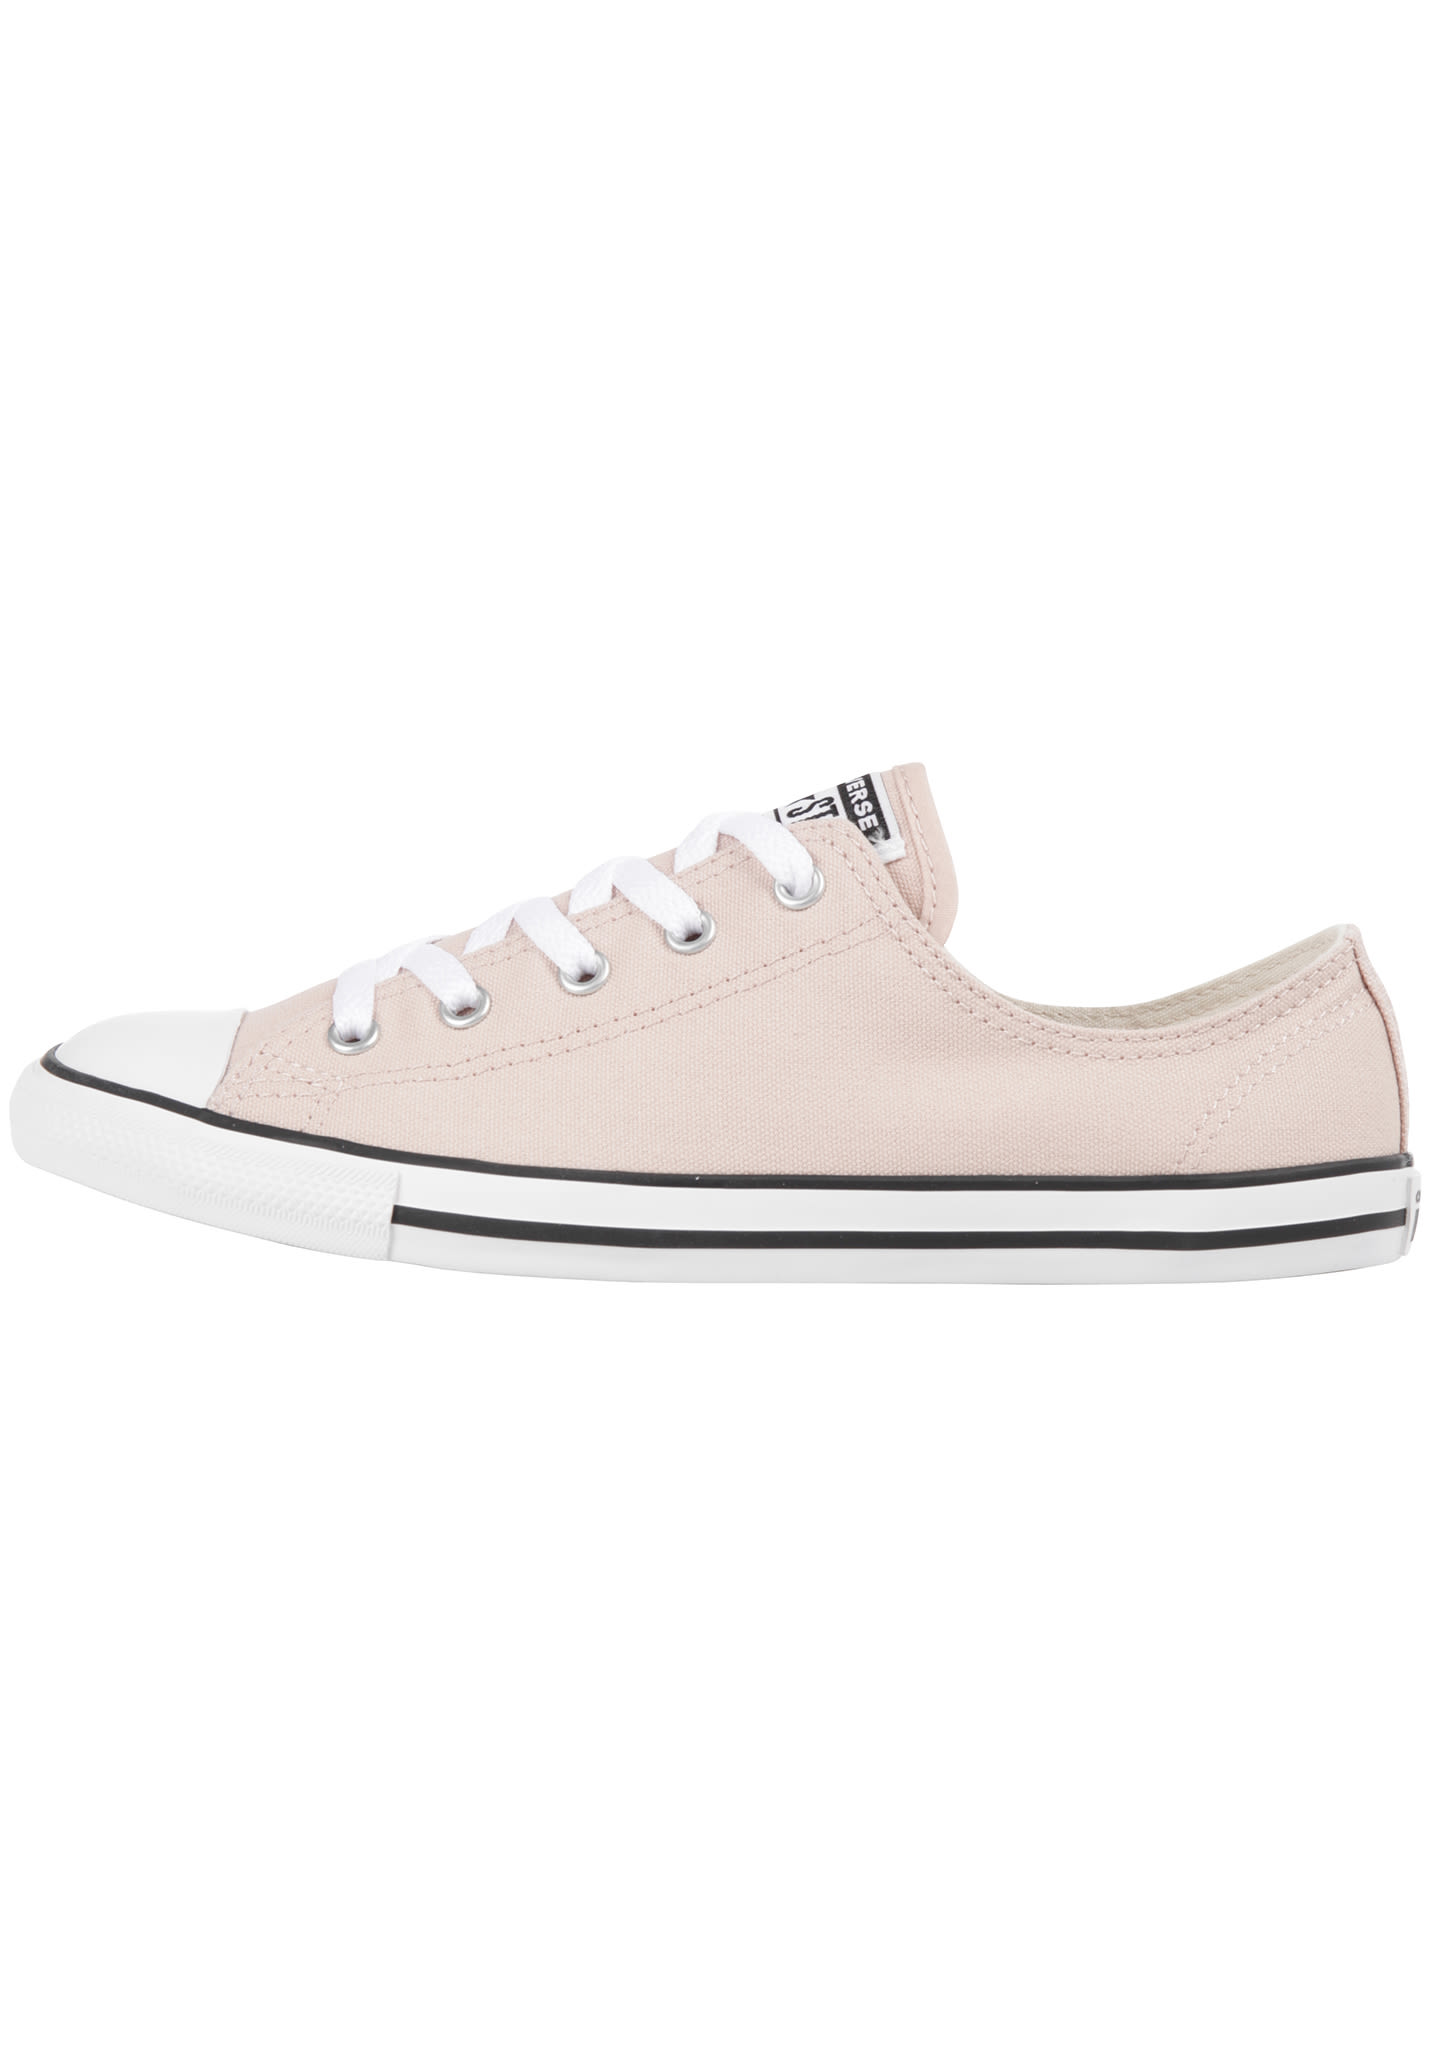 Converse Chuck Taylor All Star Dainty Ox - Baskets pour Femme - Beige